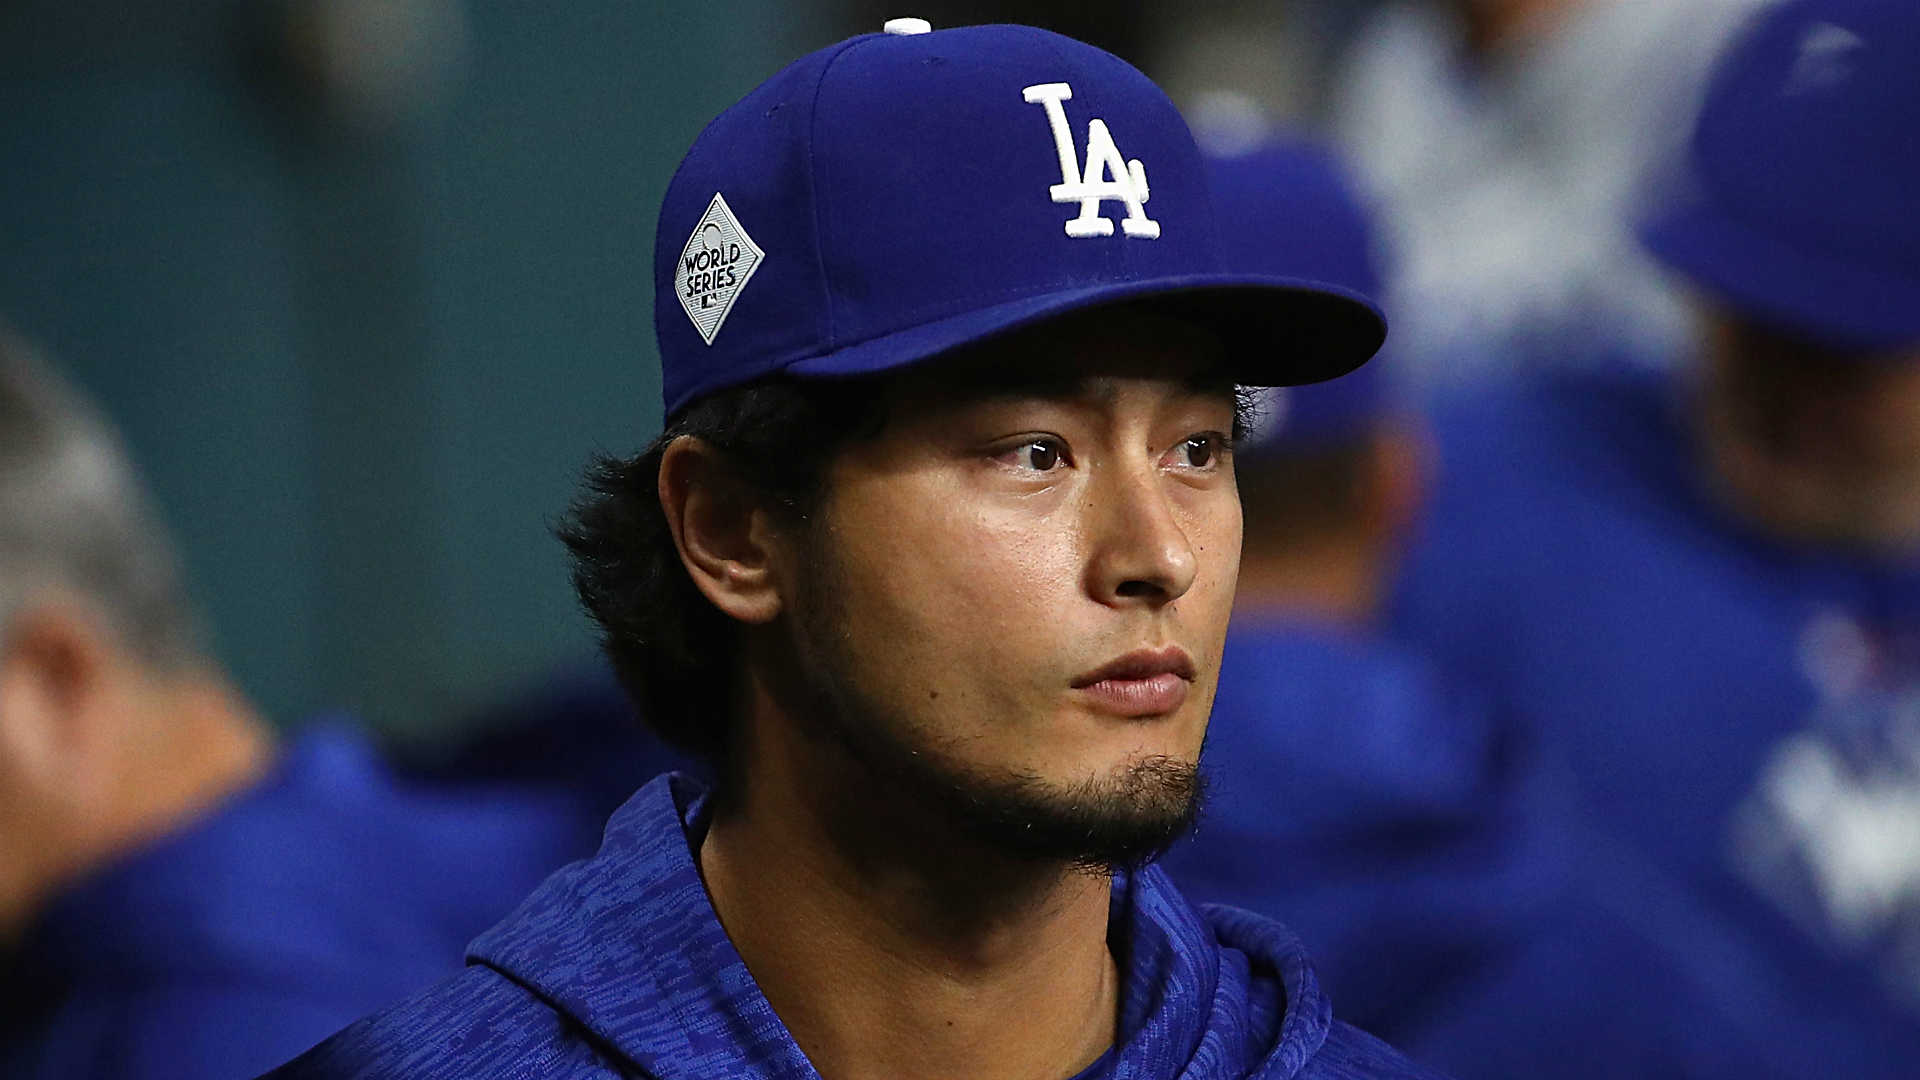 Chicago Cubs sign Yu Darvish to six-year, $126 million contract